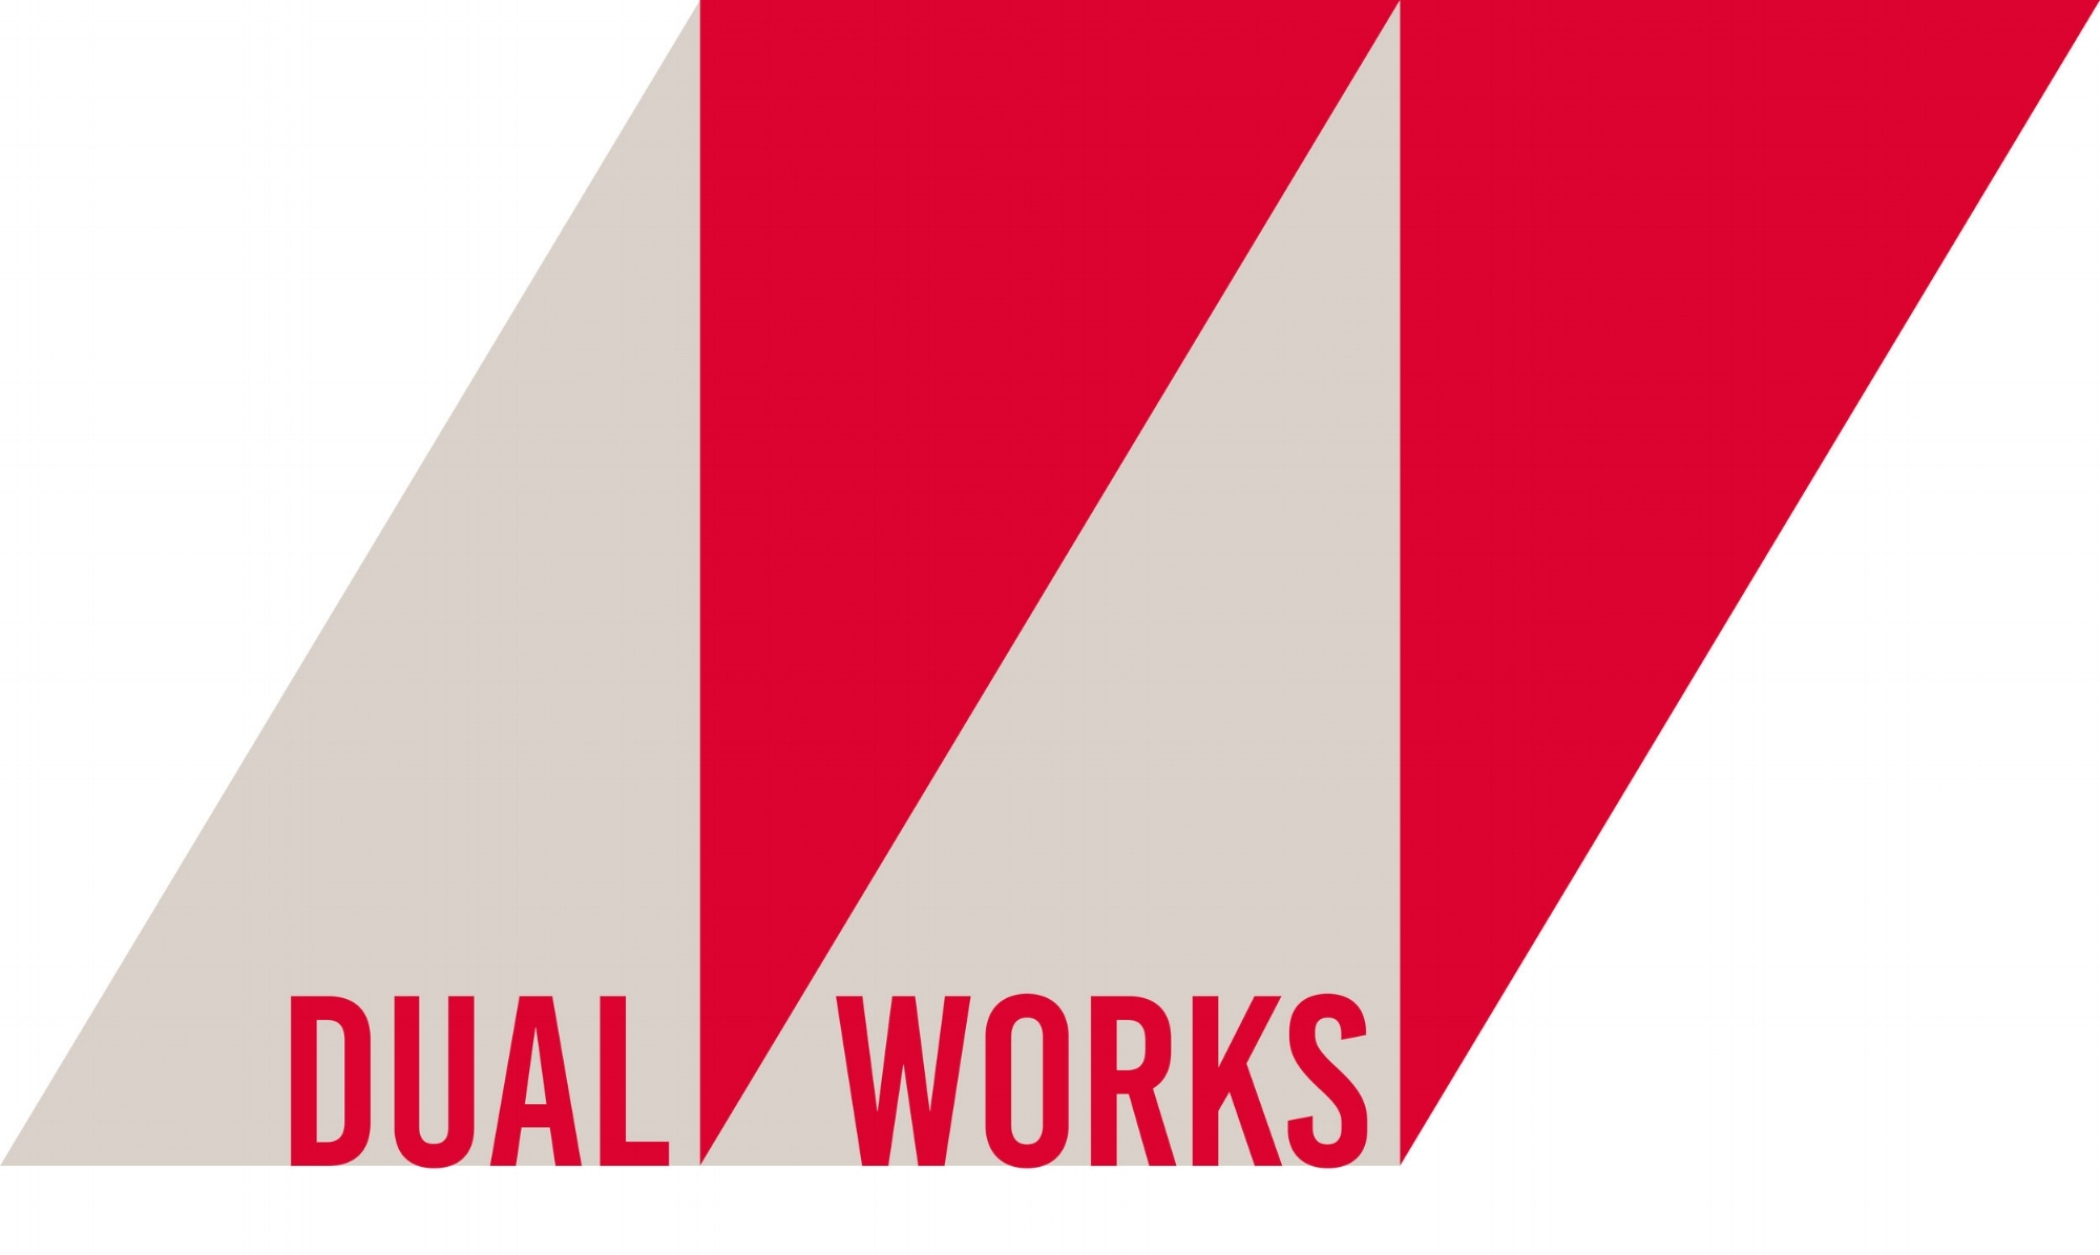 Dual Works